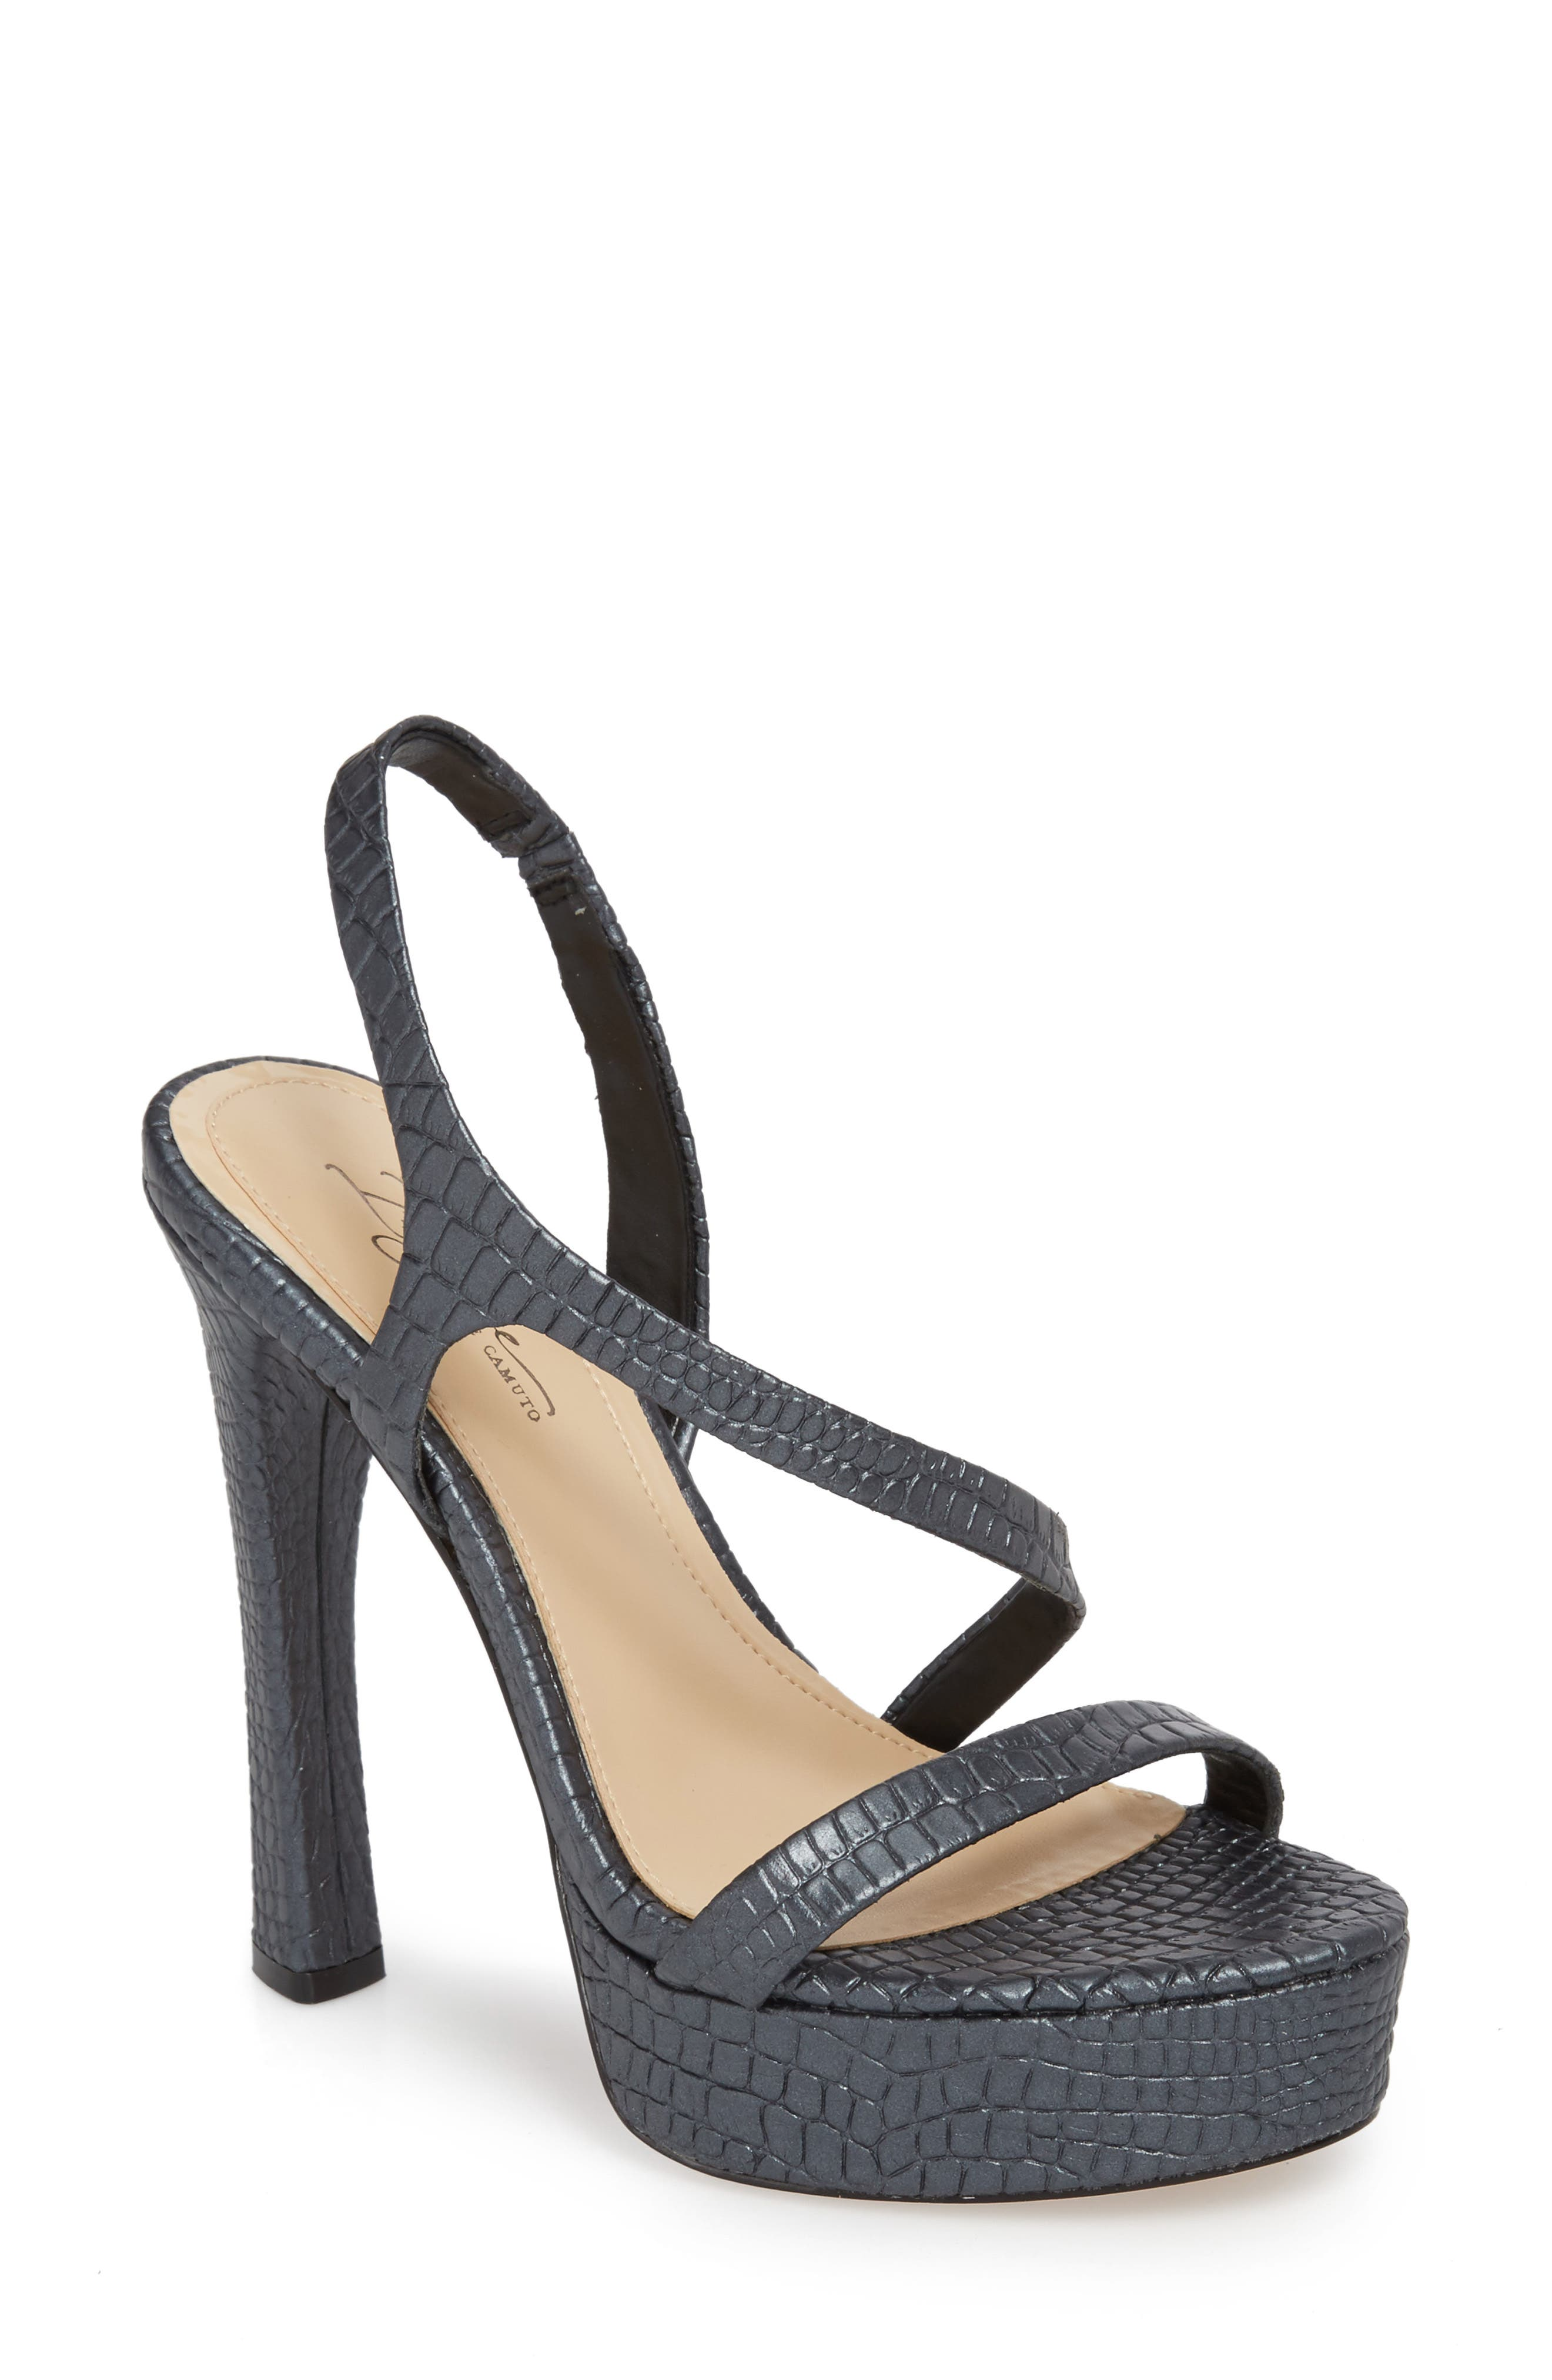 Prent Asymmetrical Platform Sandal,                         Main,                         color, BLACK LEATHER